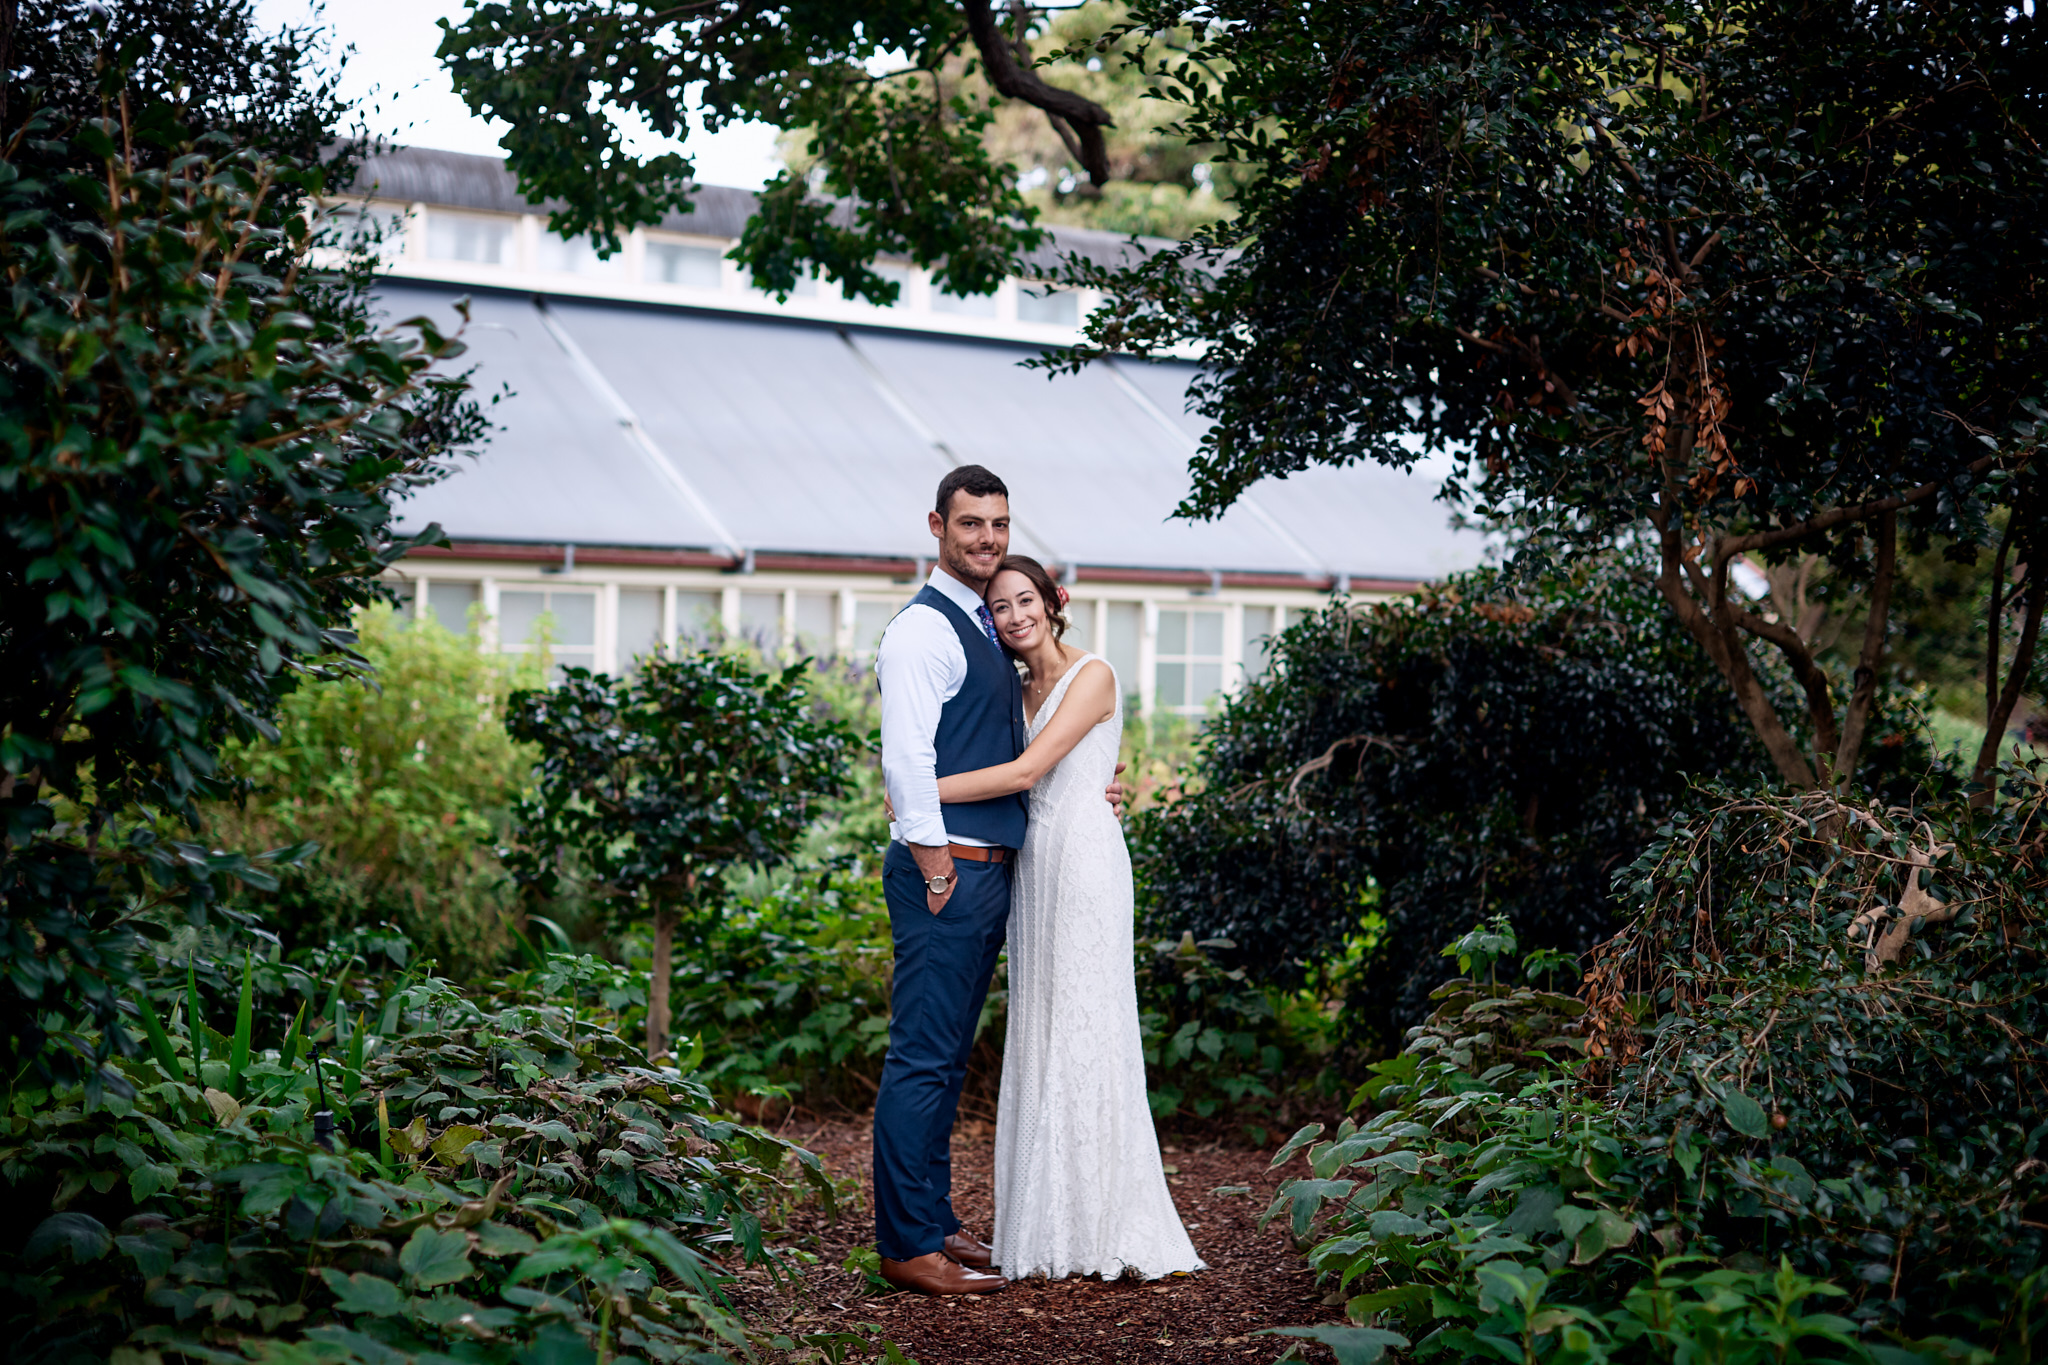 bride and groom hugging in garden Sydney Royal Botanic Gardens by Blue Mountains wedding photographer Joshua Witheford